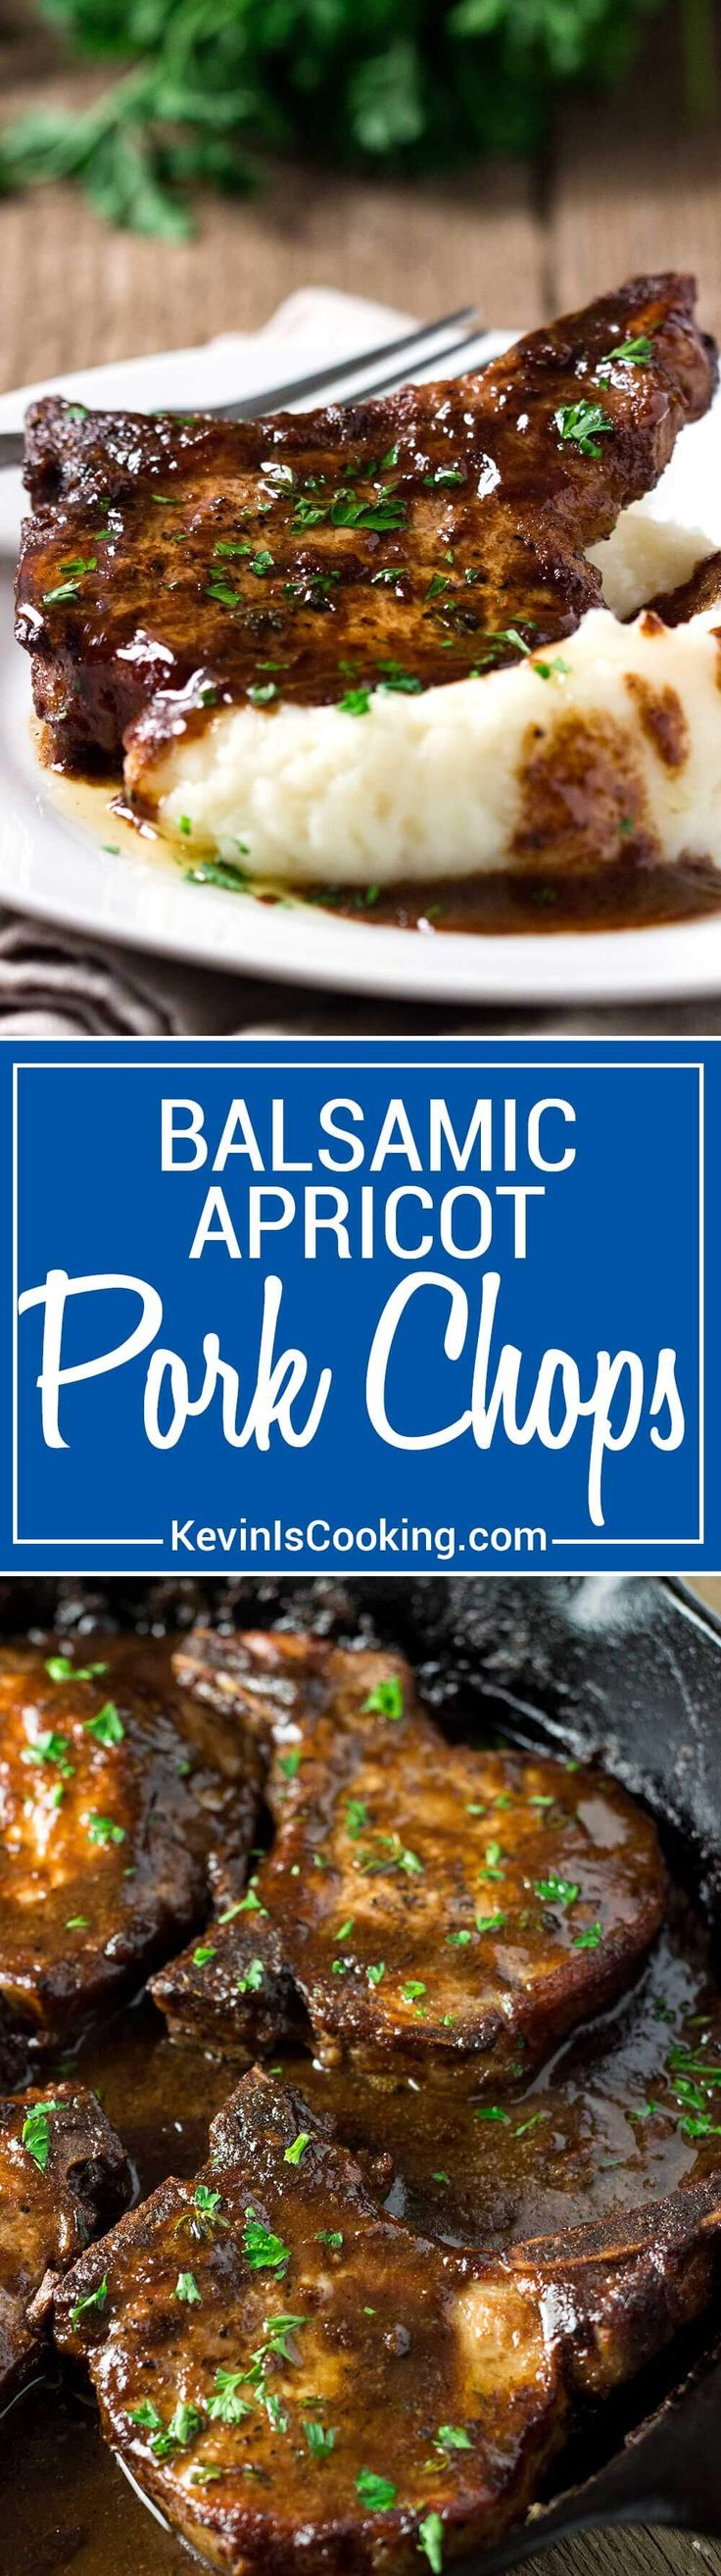 Super easy, super tasty, these Balsamic Apricot Pork Chops are on the ...